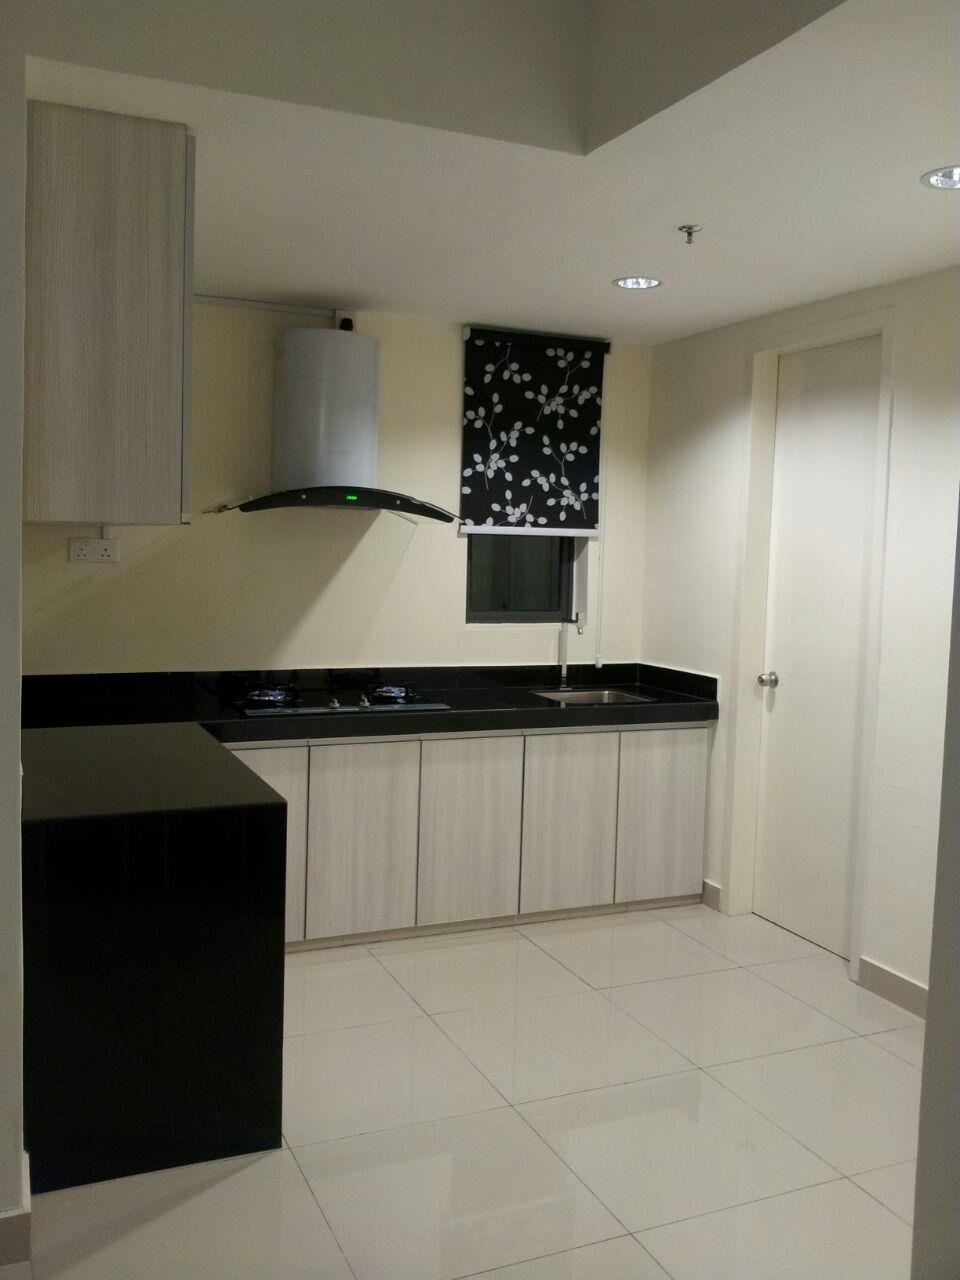 Univ360 Condo for rent, Fully Furnished, 2 Car Parks, Seri Kembangan